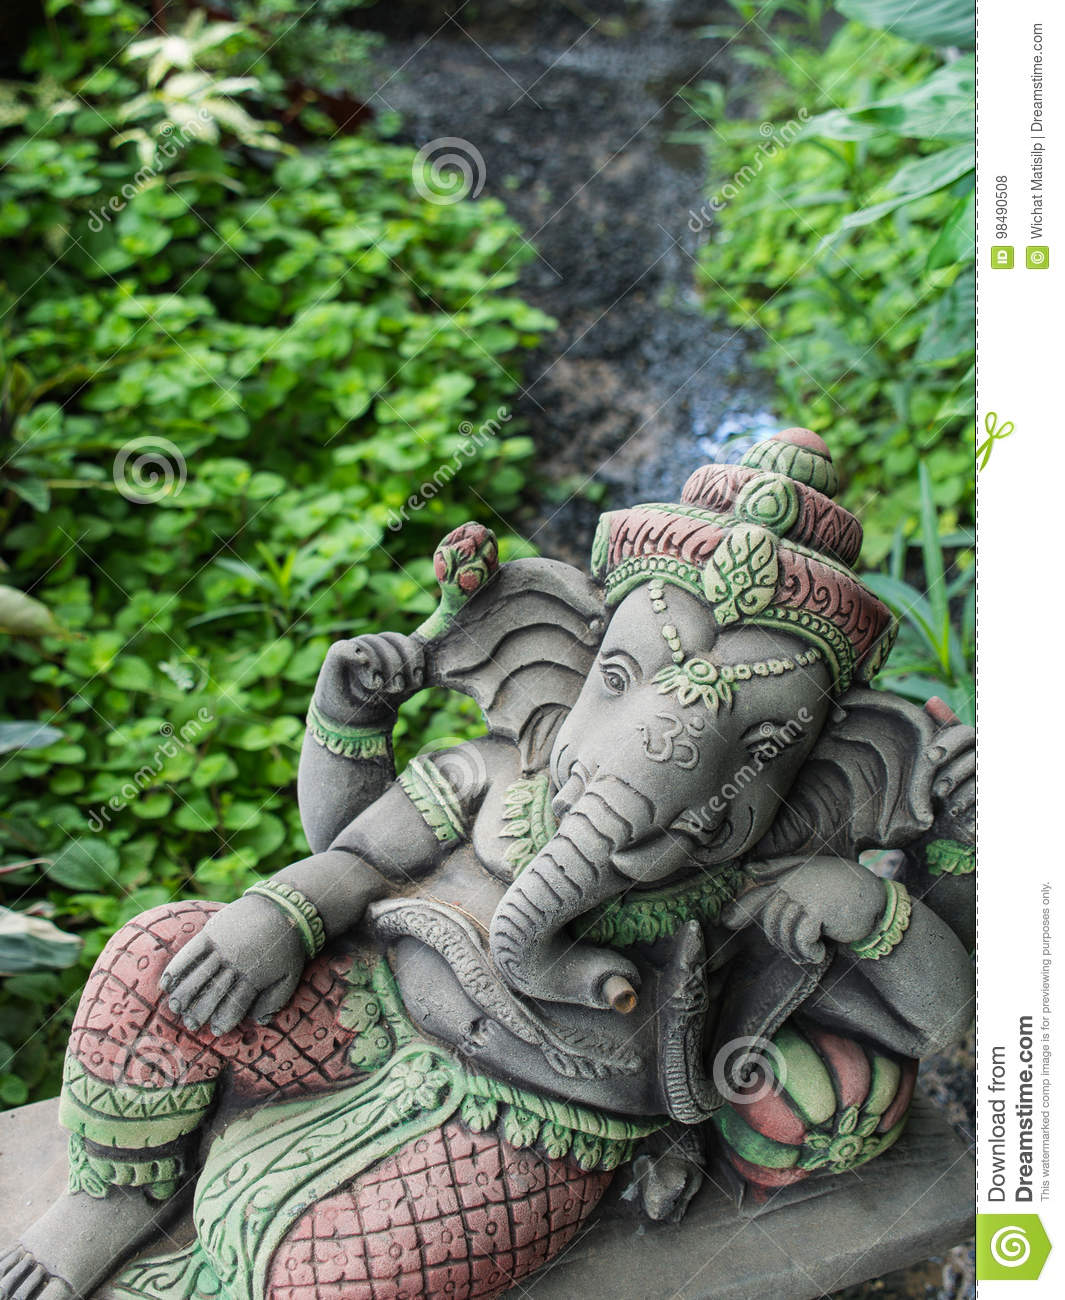 Download Ganesh Sitting In The Garden Stock Photo   Image Of Hands,  Decorative: 98490508